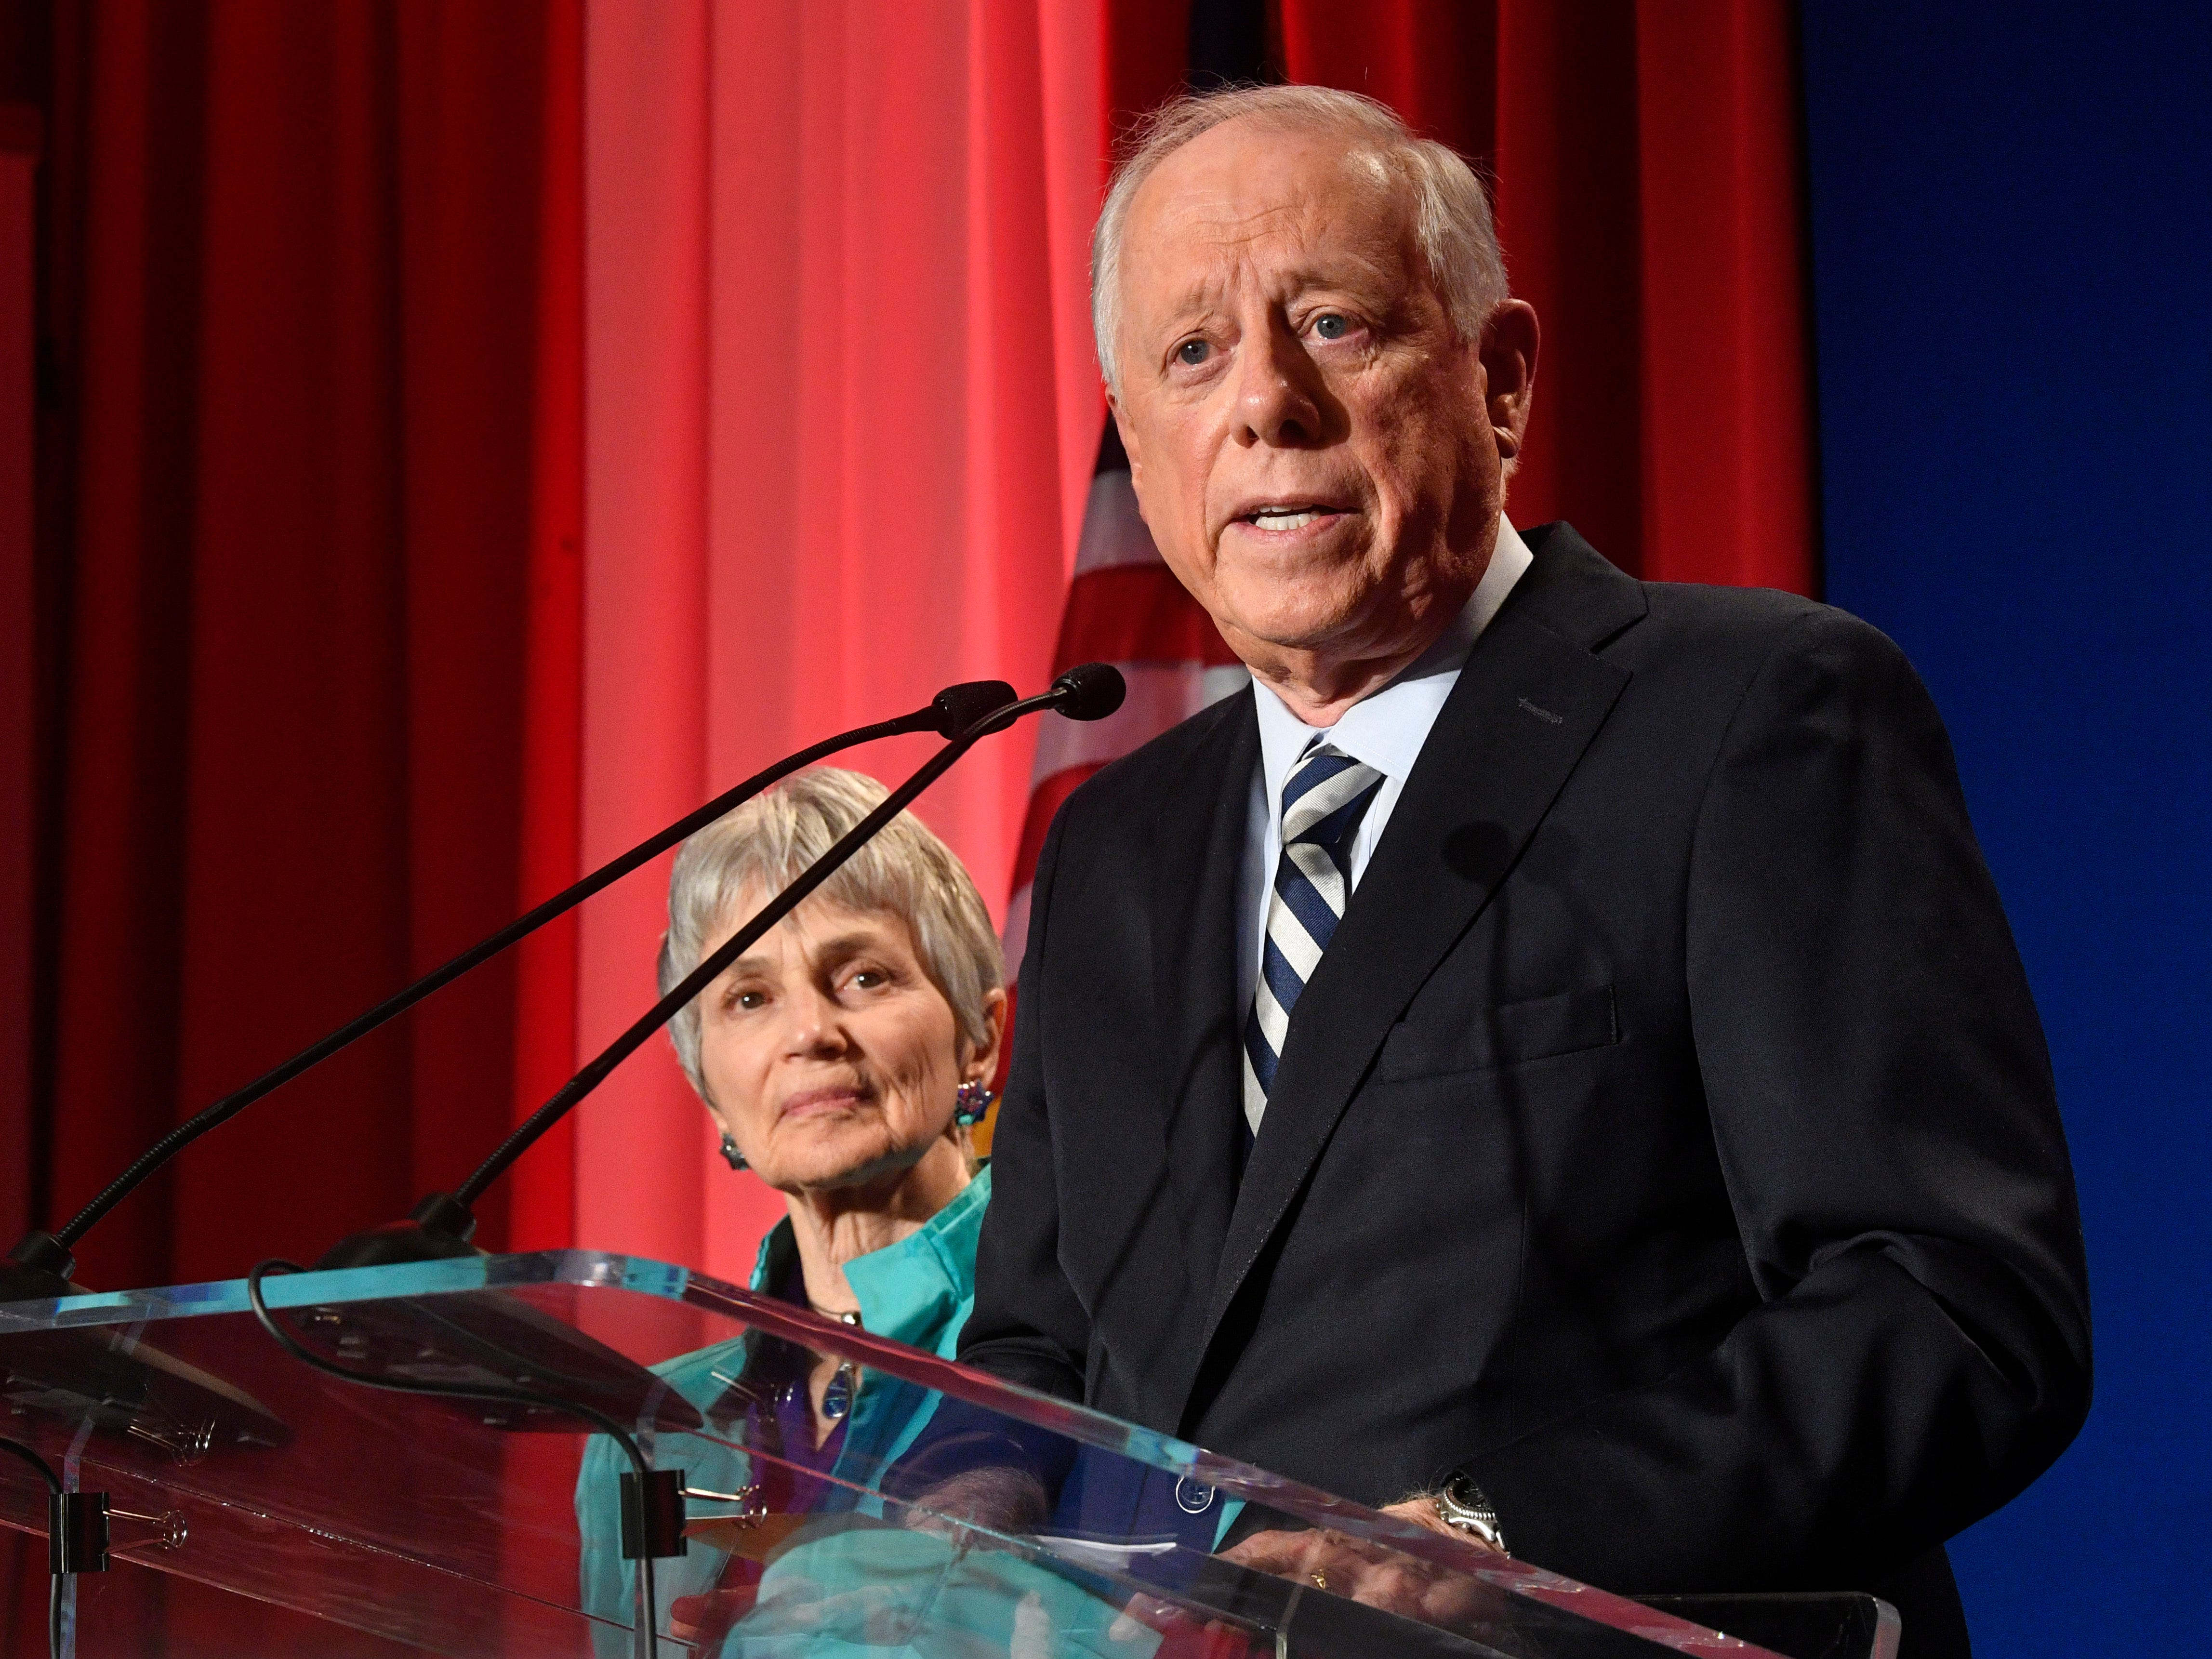 Democratic U.S. Senate candidate Phil Bredesen delivers his concession speech with his wife beside him at his campaign watch party at the Hilton Hotel Tuesday Nov. 6, 2018, in Nashville, Tenn.